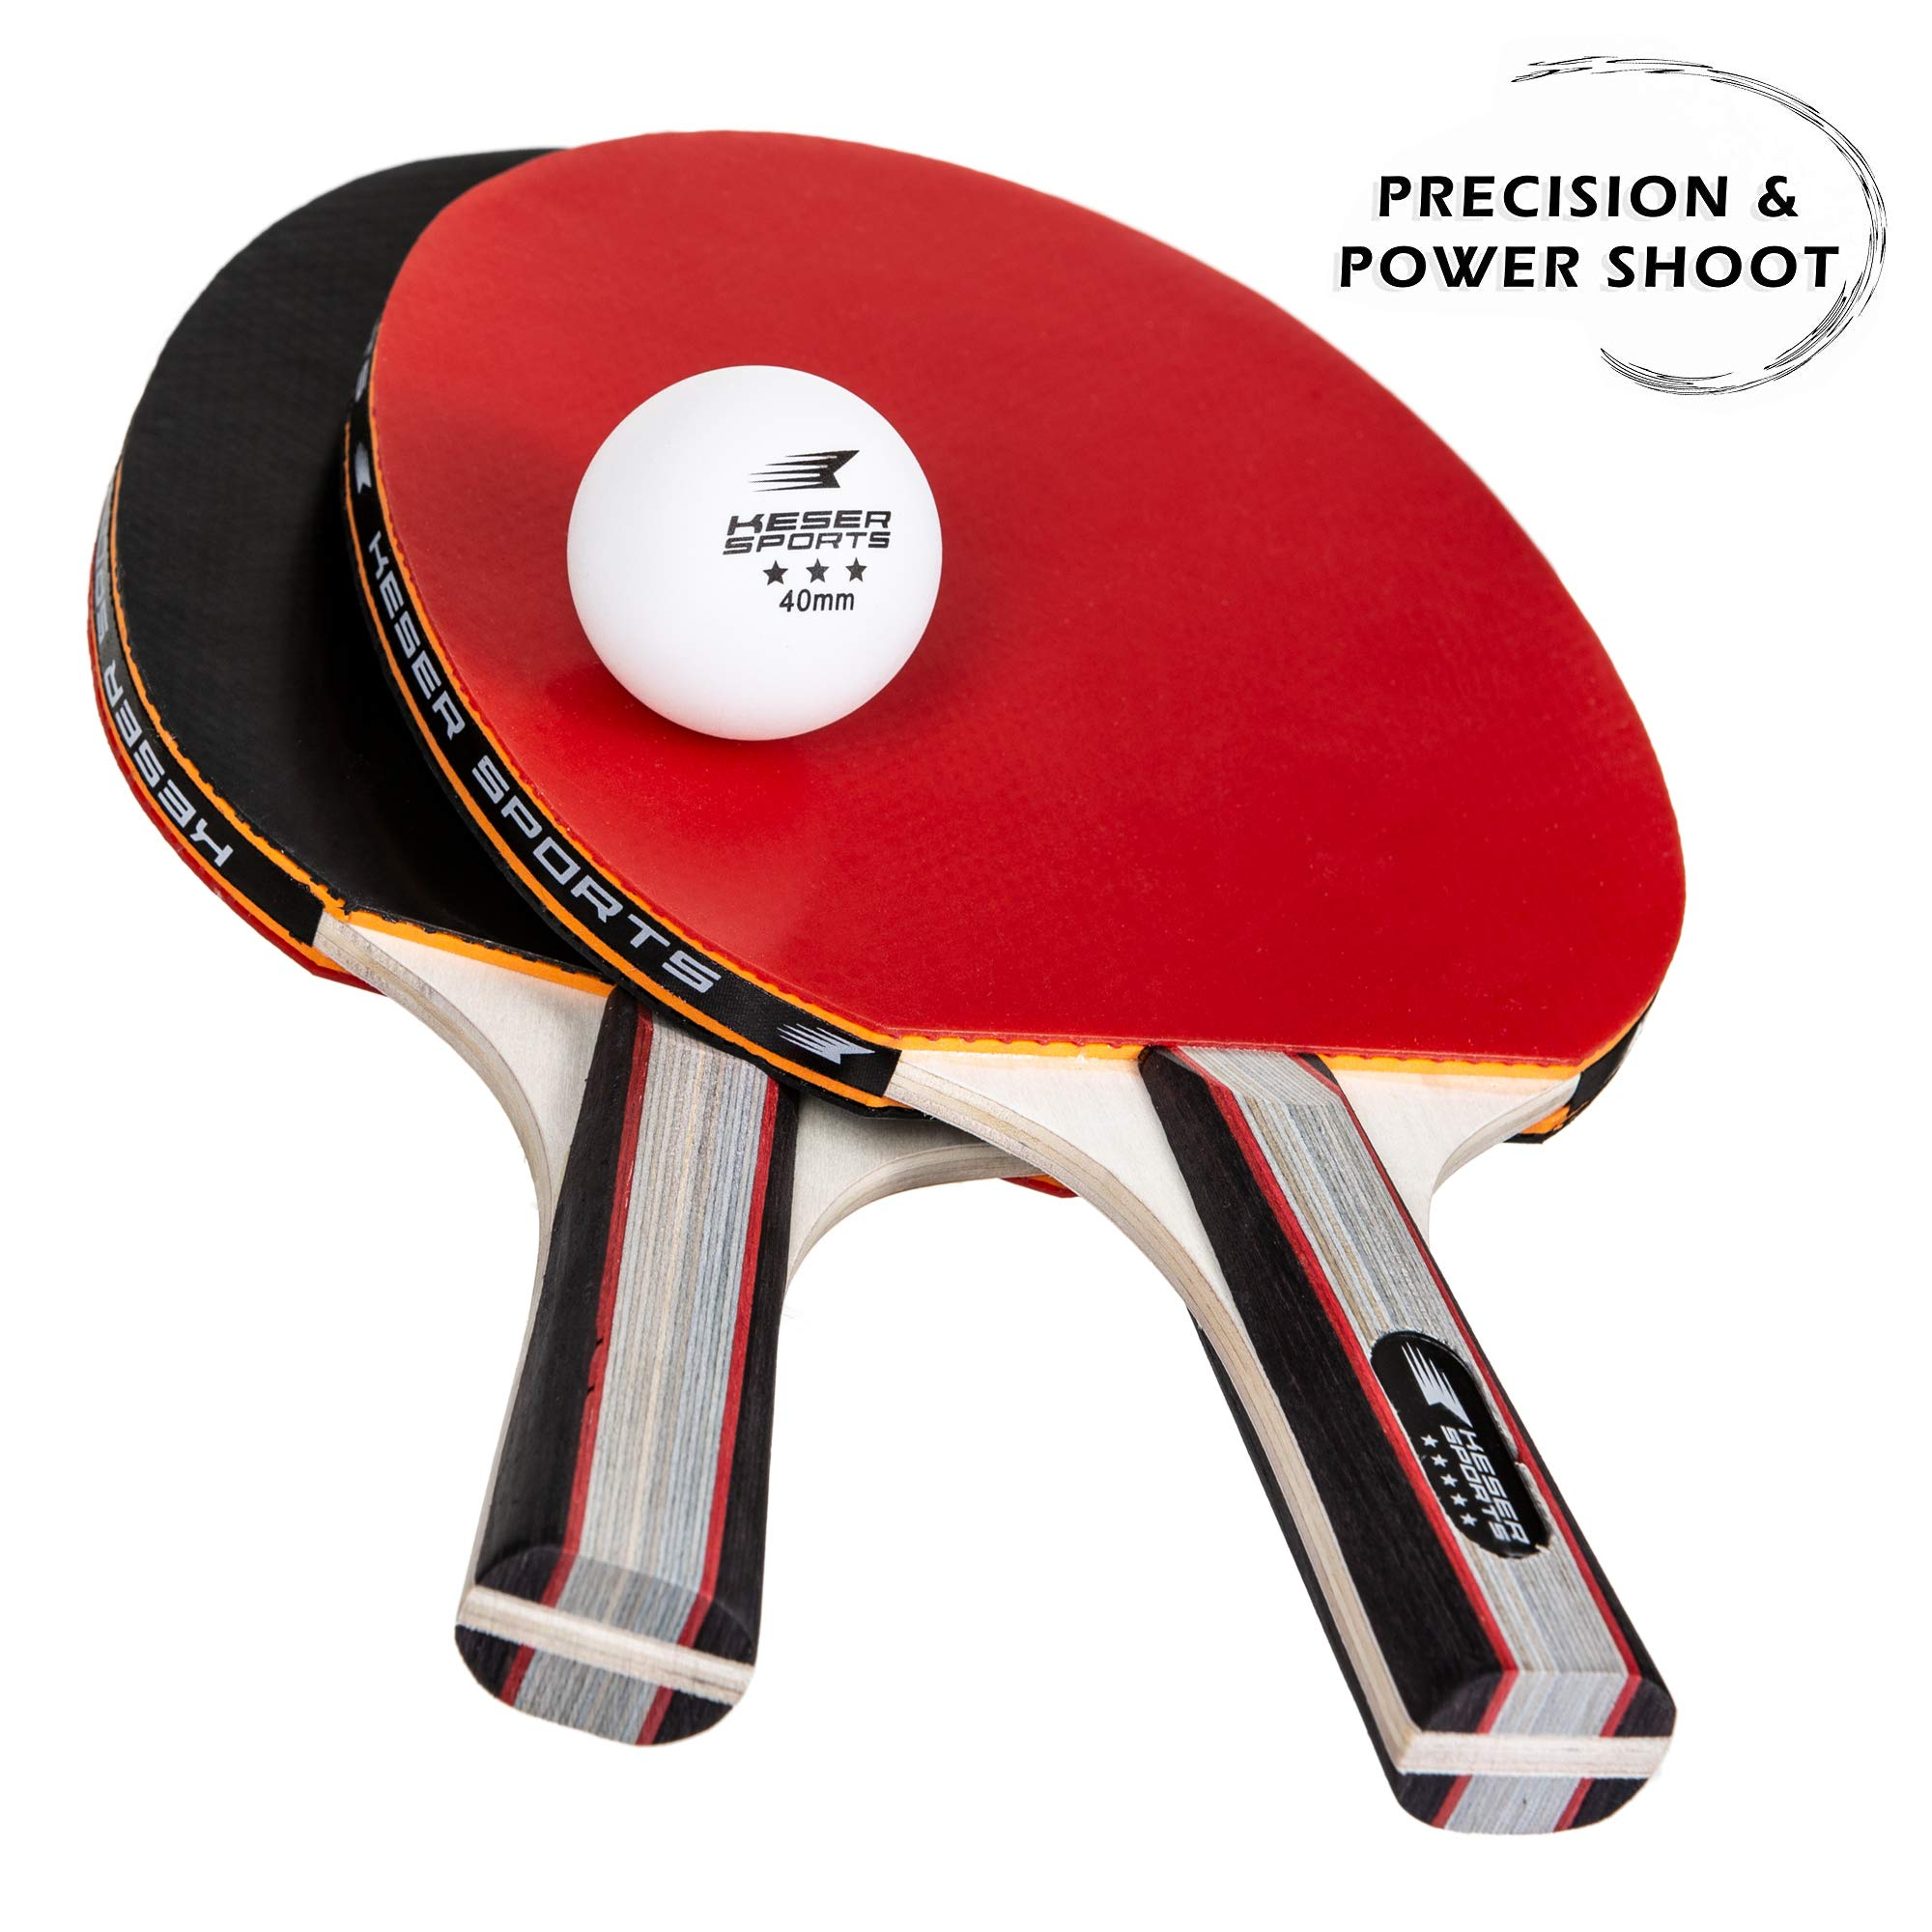 Keser Sports 5-Star Ping Pong Paddle Set, 4-Player Racket Set Bundle, 8 Professional ABS Balls, Portable Storage Bag, Full Table Tennis Set, Advanced Spin, Speed & Control, Play Outdoors/Indoors by Keser Sports (Image #4)